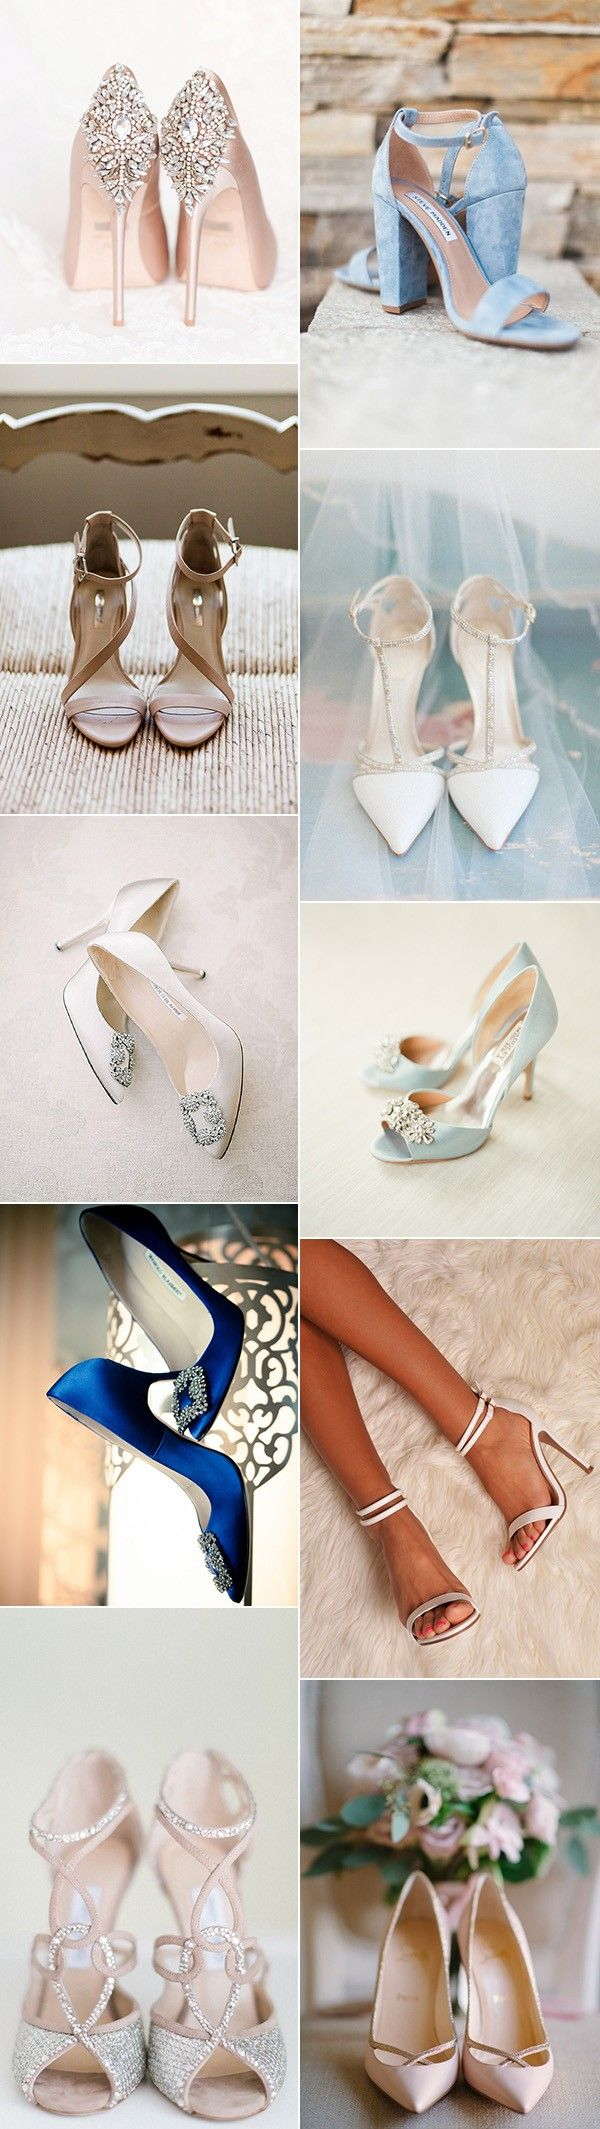 2017 trending bridal wedding shoes to love